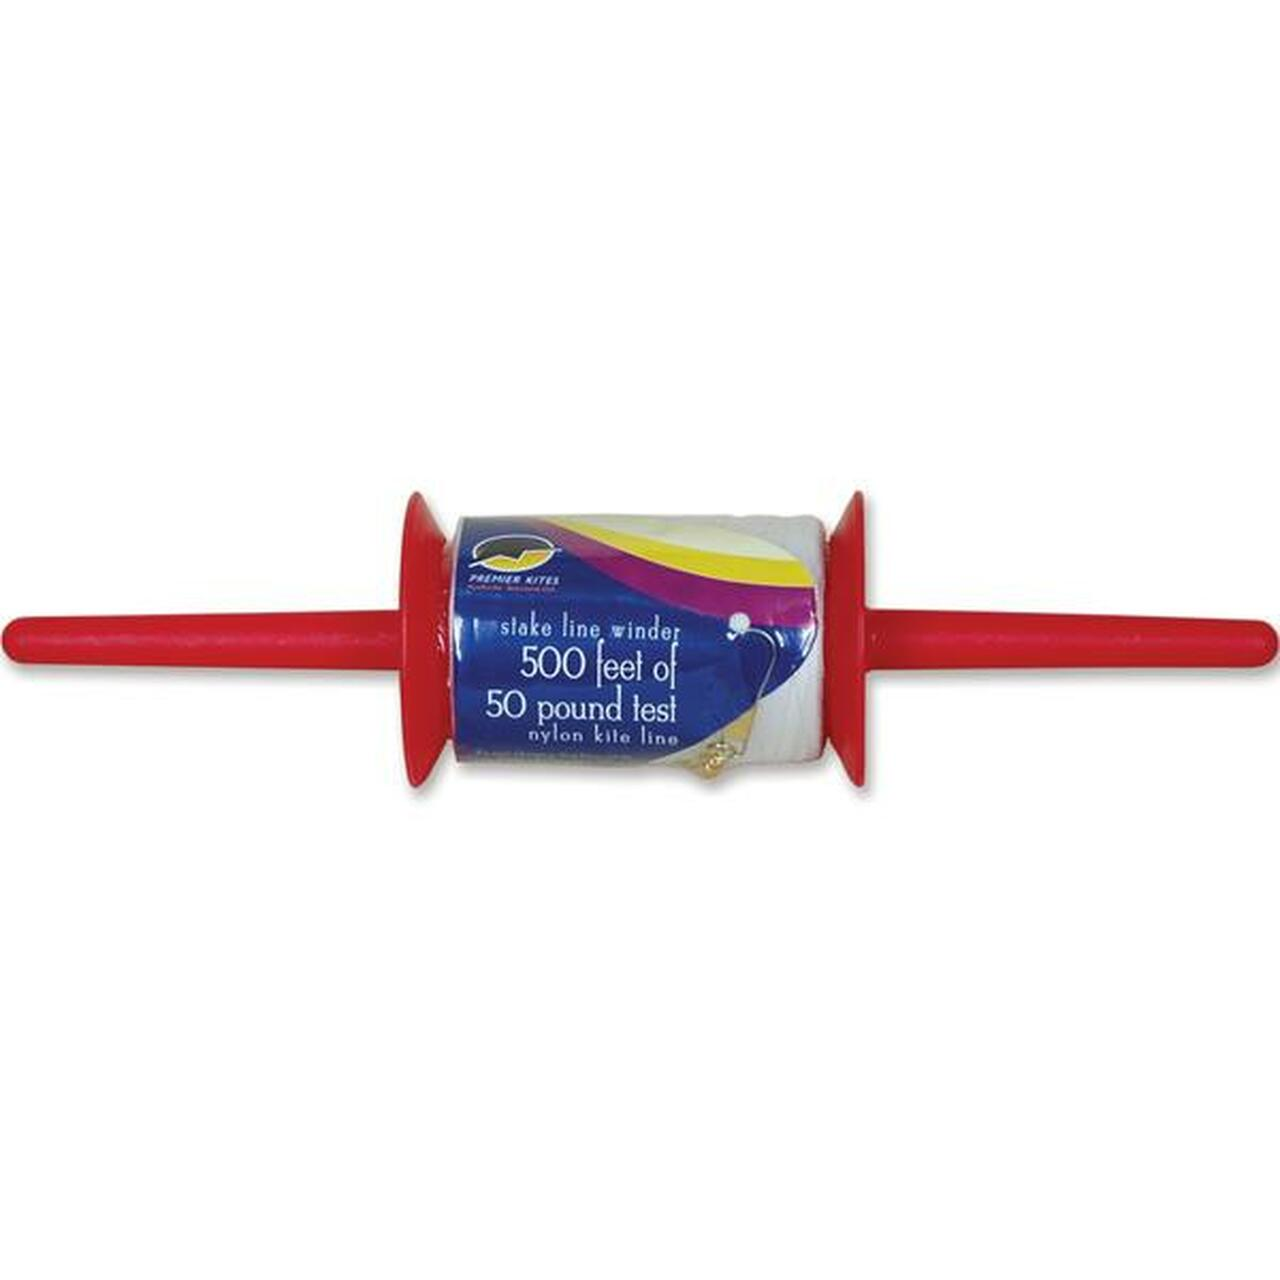 50 lbs x 500ft Kite Line on Stake Winder